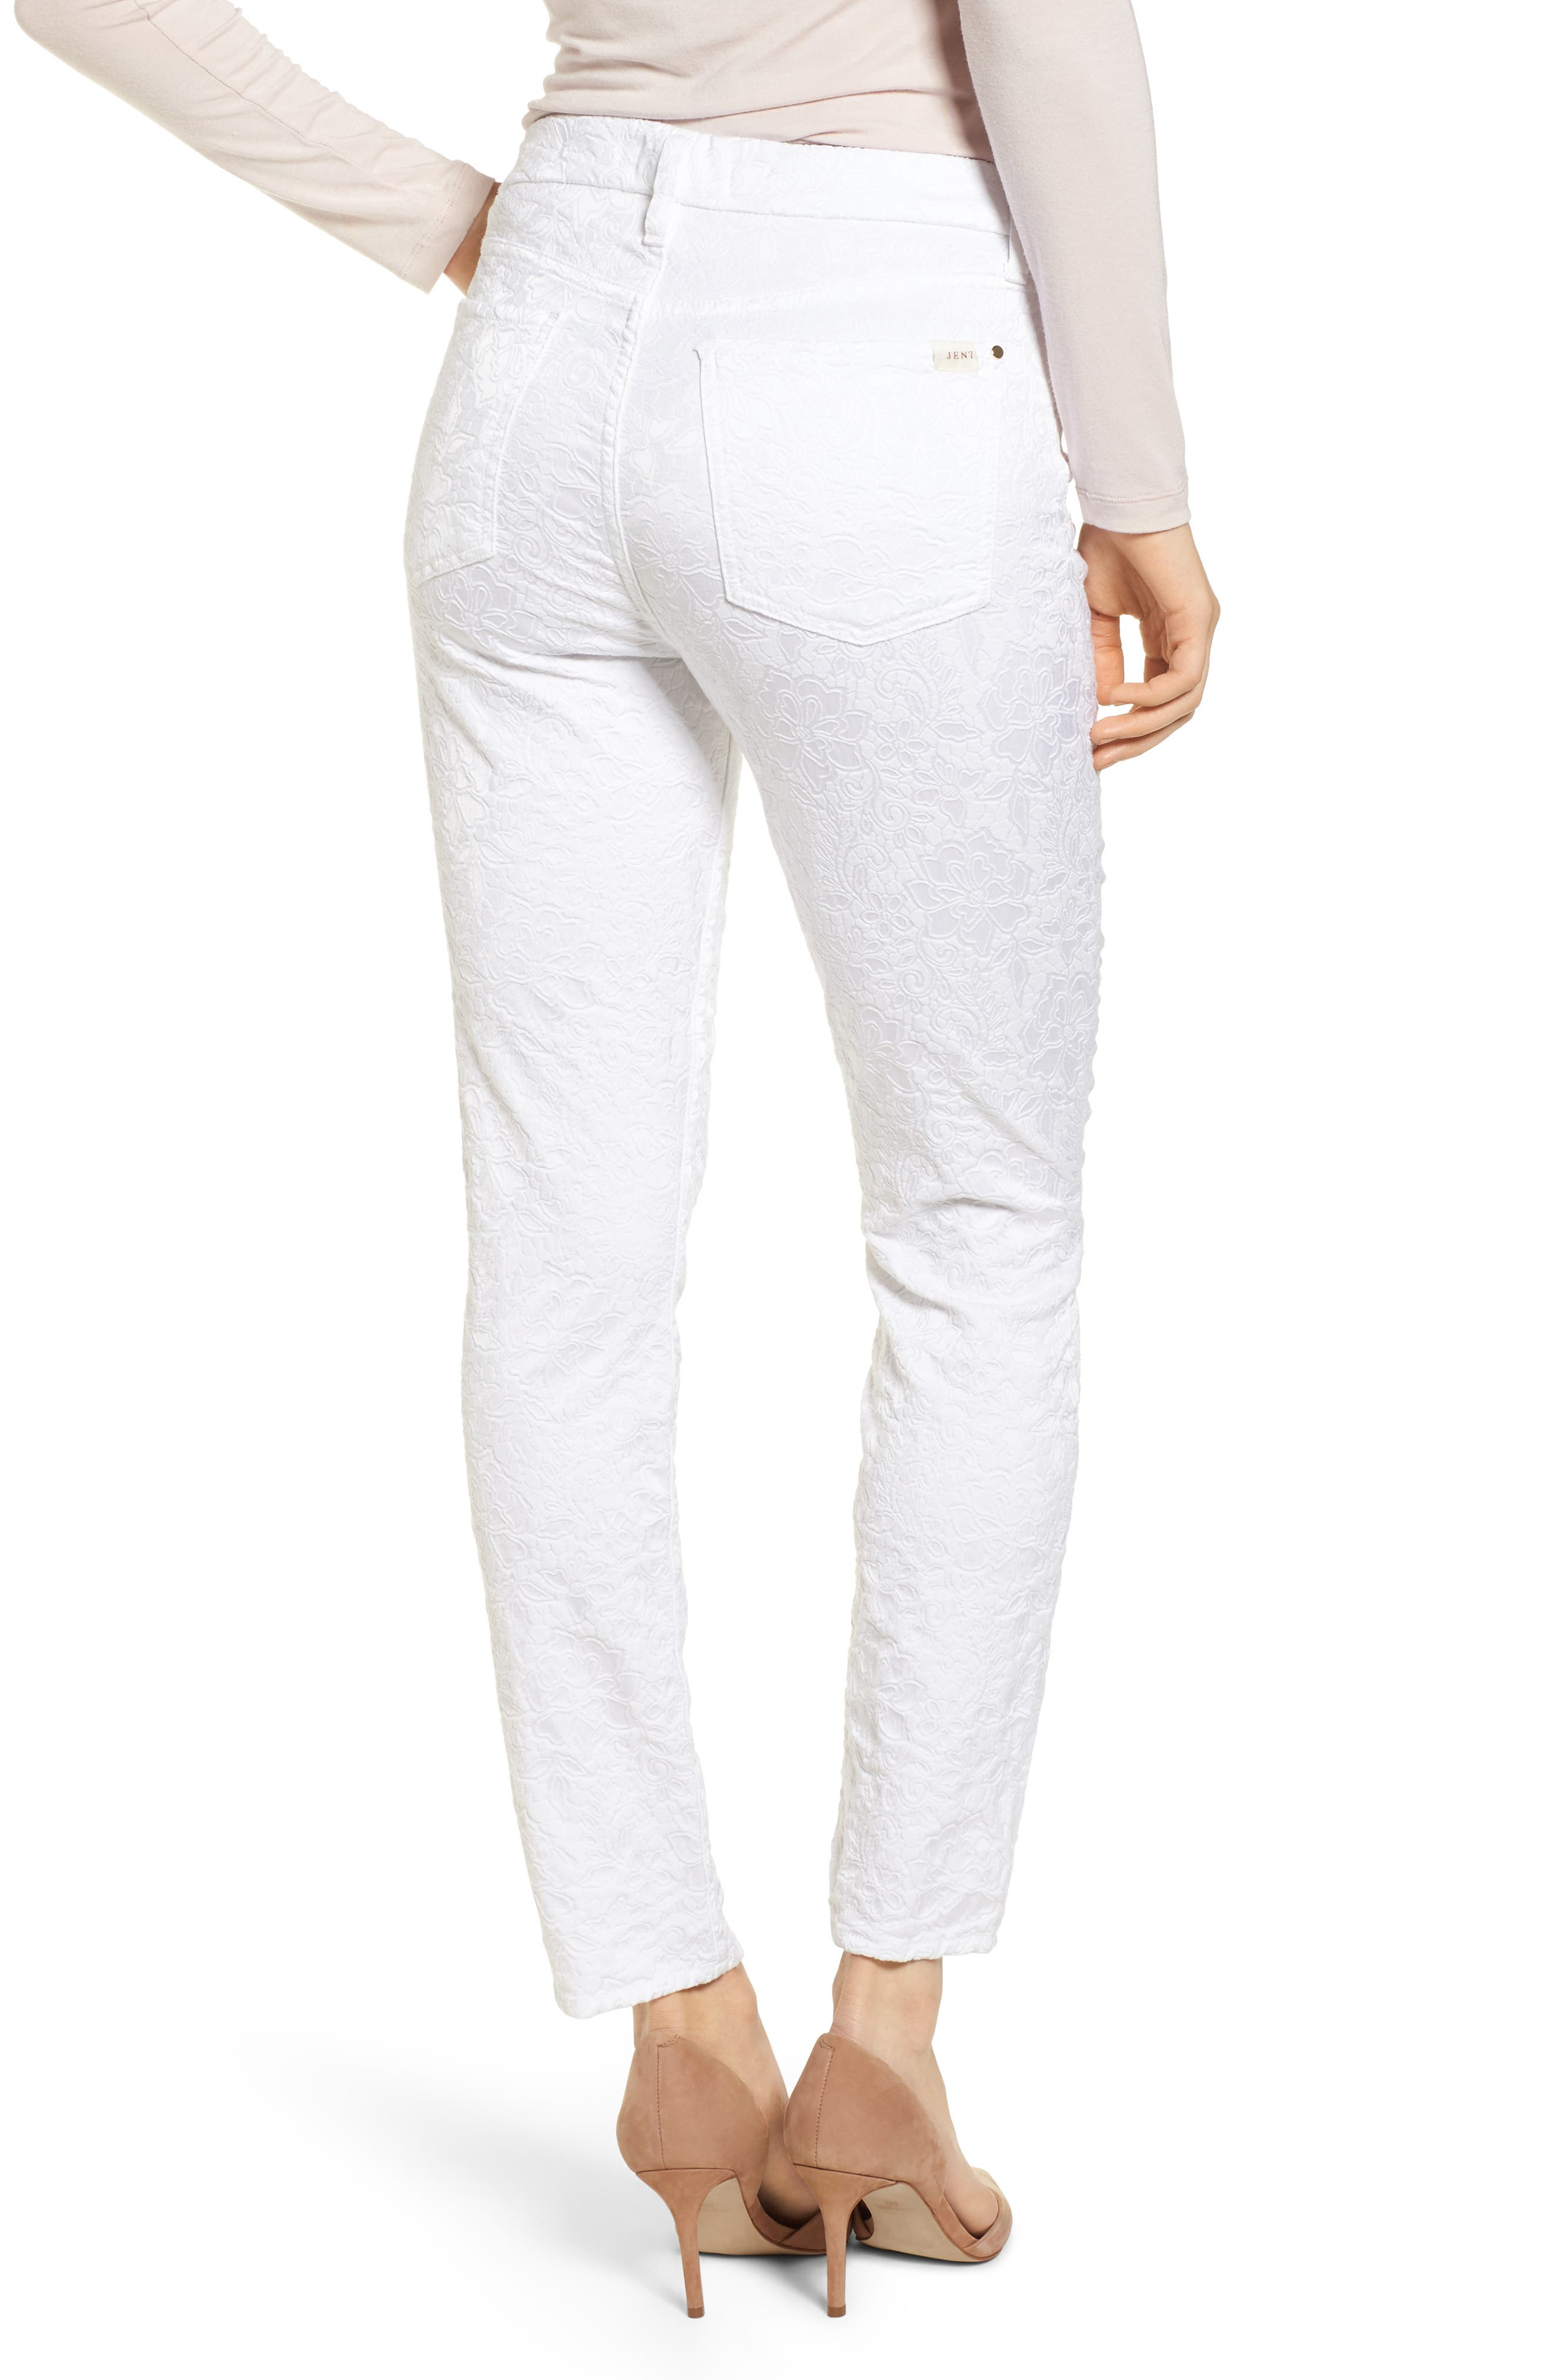 JEN7 BY 7 FOR ALL MANKIND,                             Jacquard Ankle Skinny Jeans,                             Alternate thumbnail 2, color,                             100